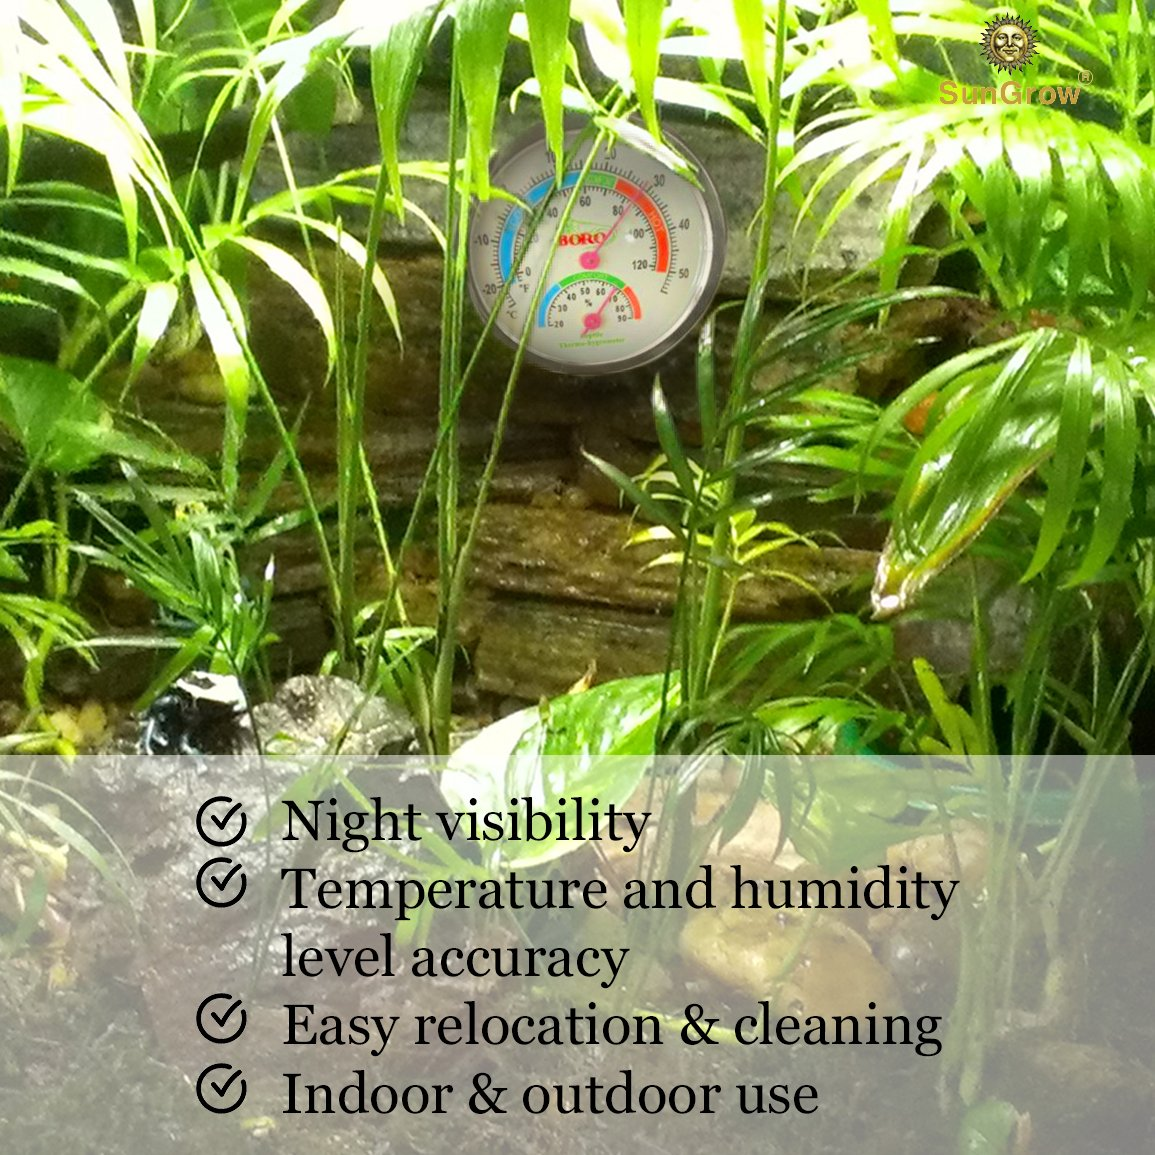 Water-Proof SunGrow Boro Analog Dual Thermometer & Humidity Gauge with Night light : Submersible Hygrometer & Temperature Reader : Monitor Reptile's Habitat : Stand ensures Easy Relocation